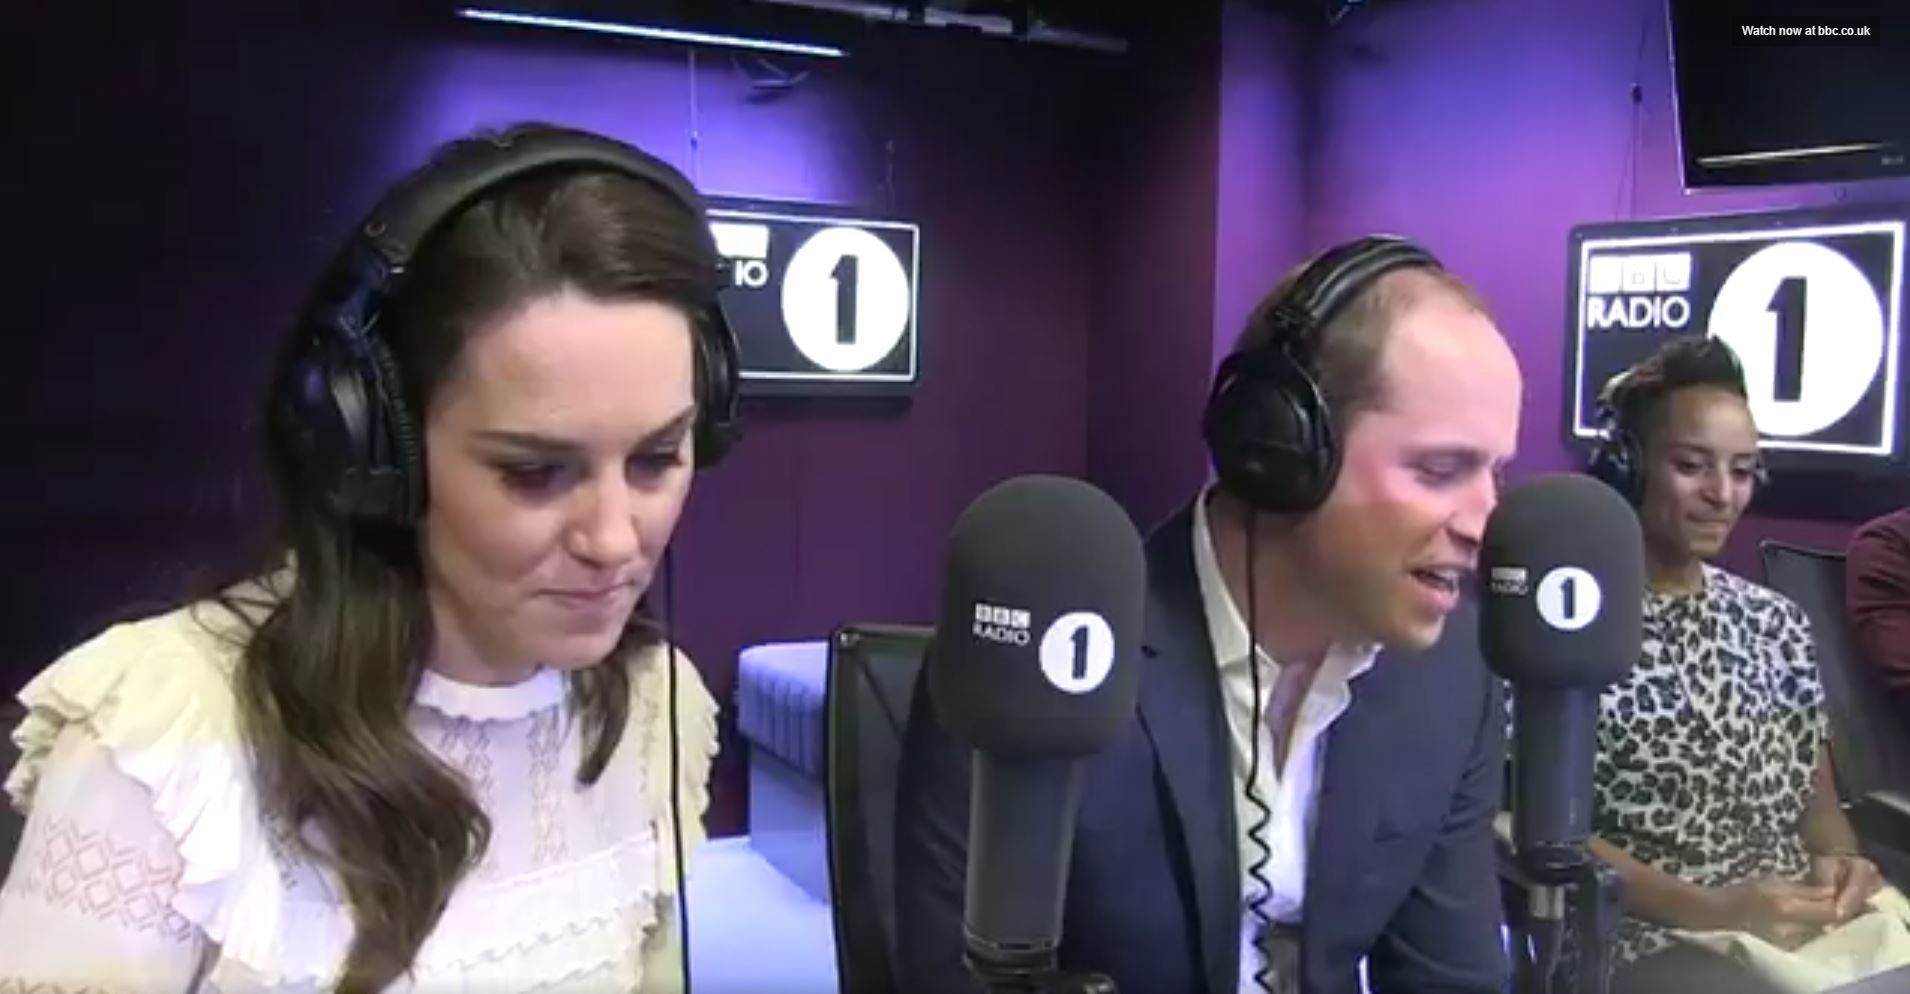 The Duke And Duchess Of Cambridge Just Completely Gatecrashed Radio